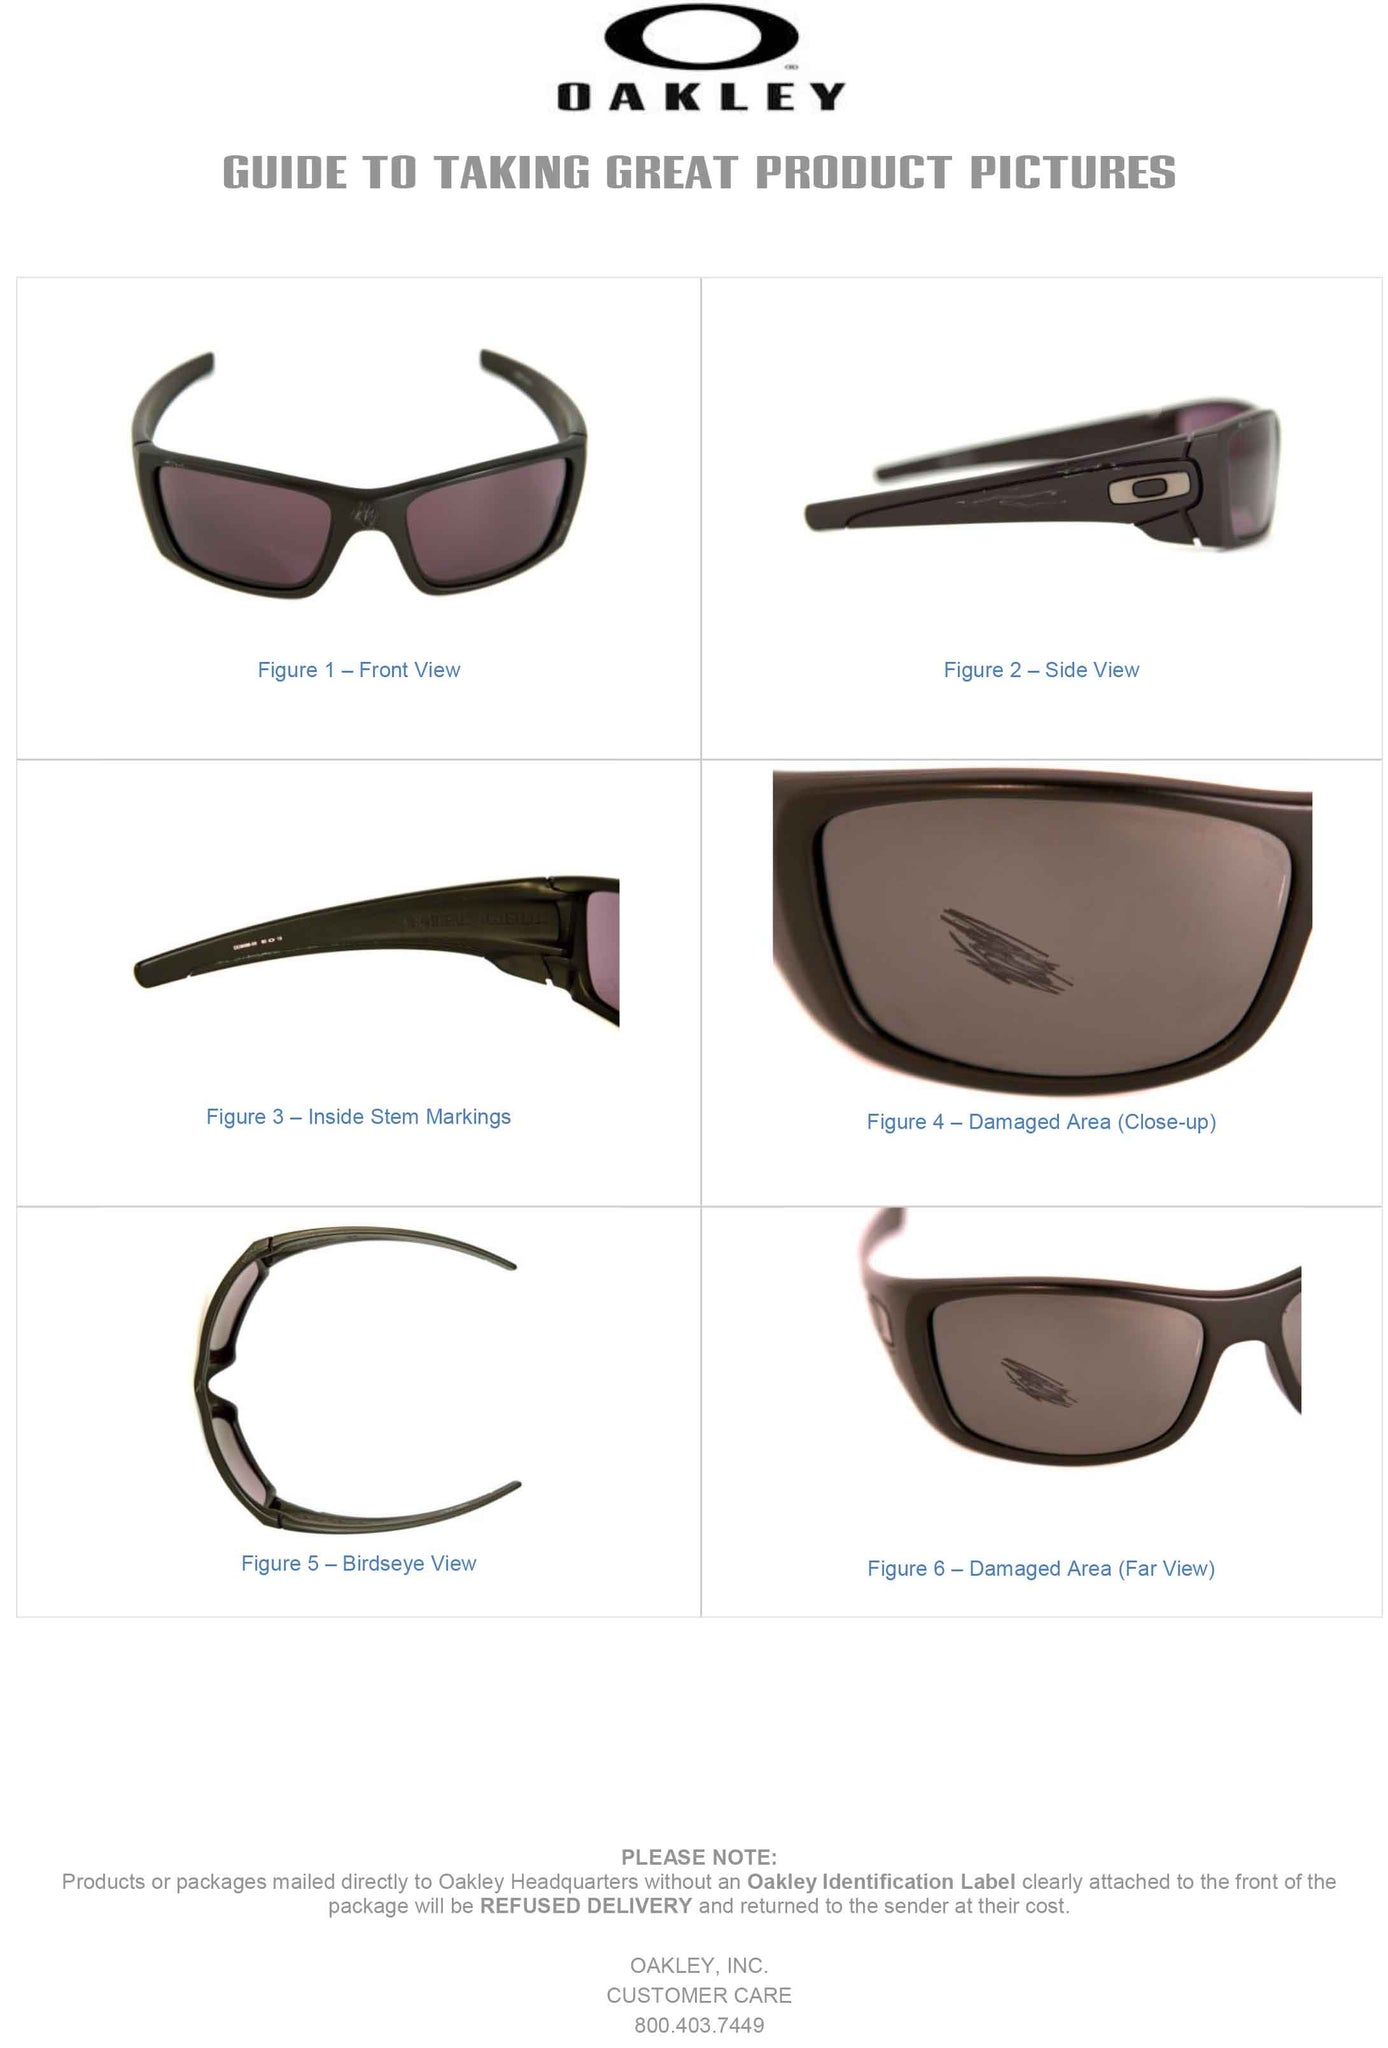 Oakley Sunglasses Warranty Guide to Taking Pictures for Service Warranty Coverage Eyewear Image Guide Pictures